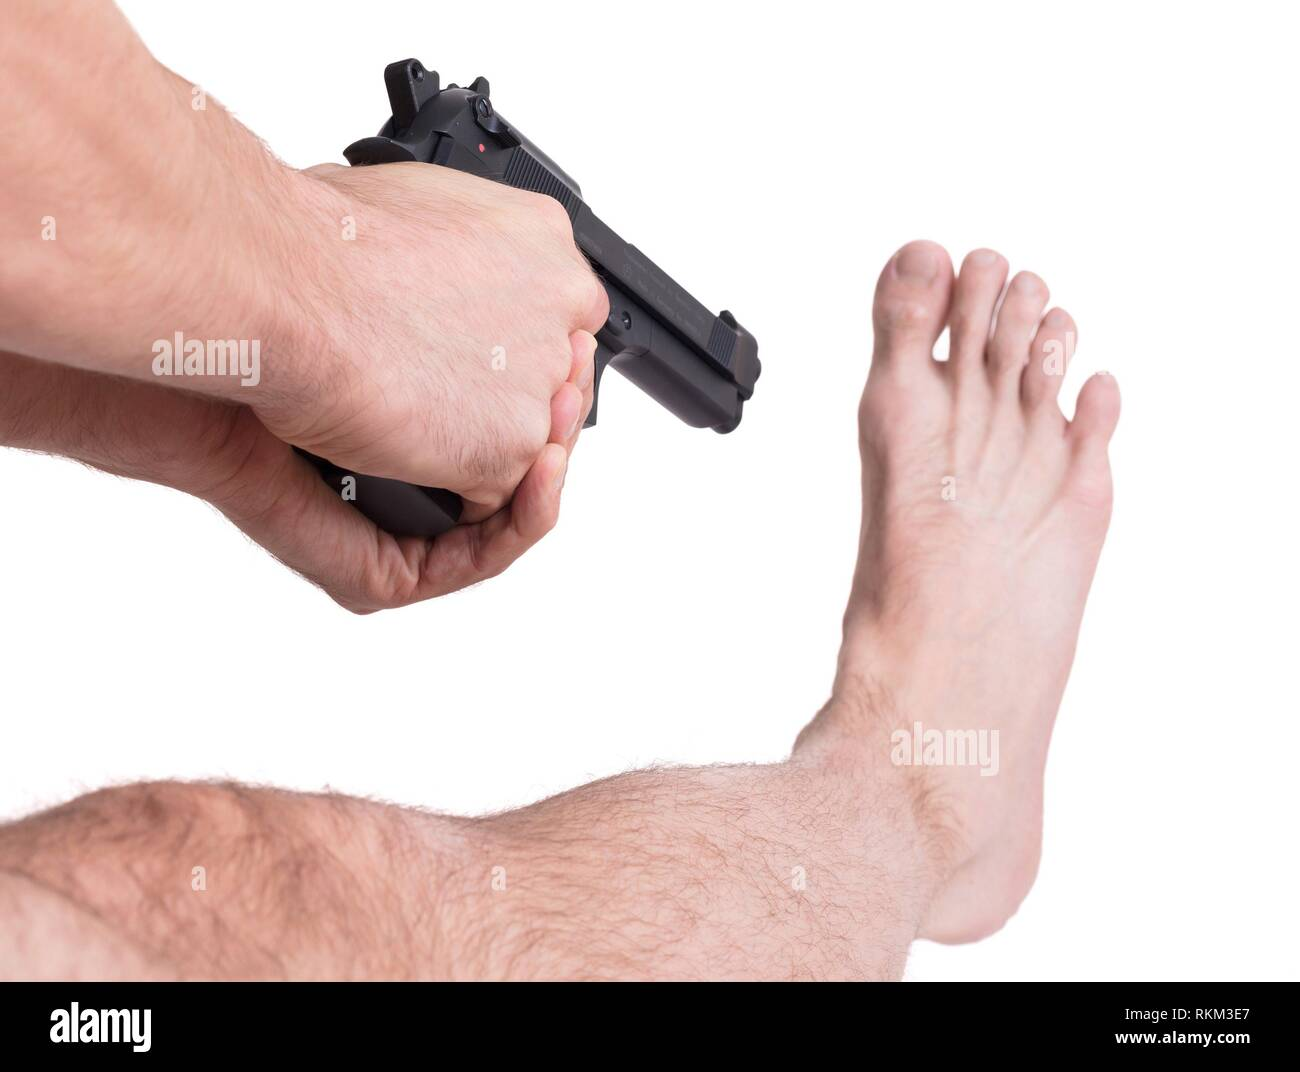 Concept - Man shooting himself in the foot. - Stock Image